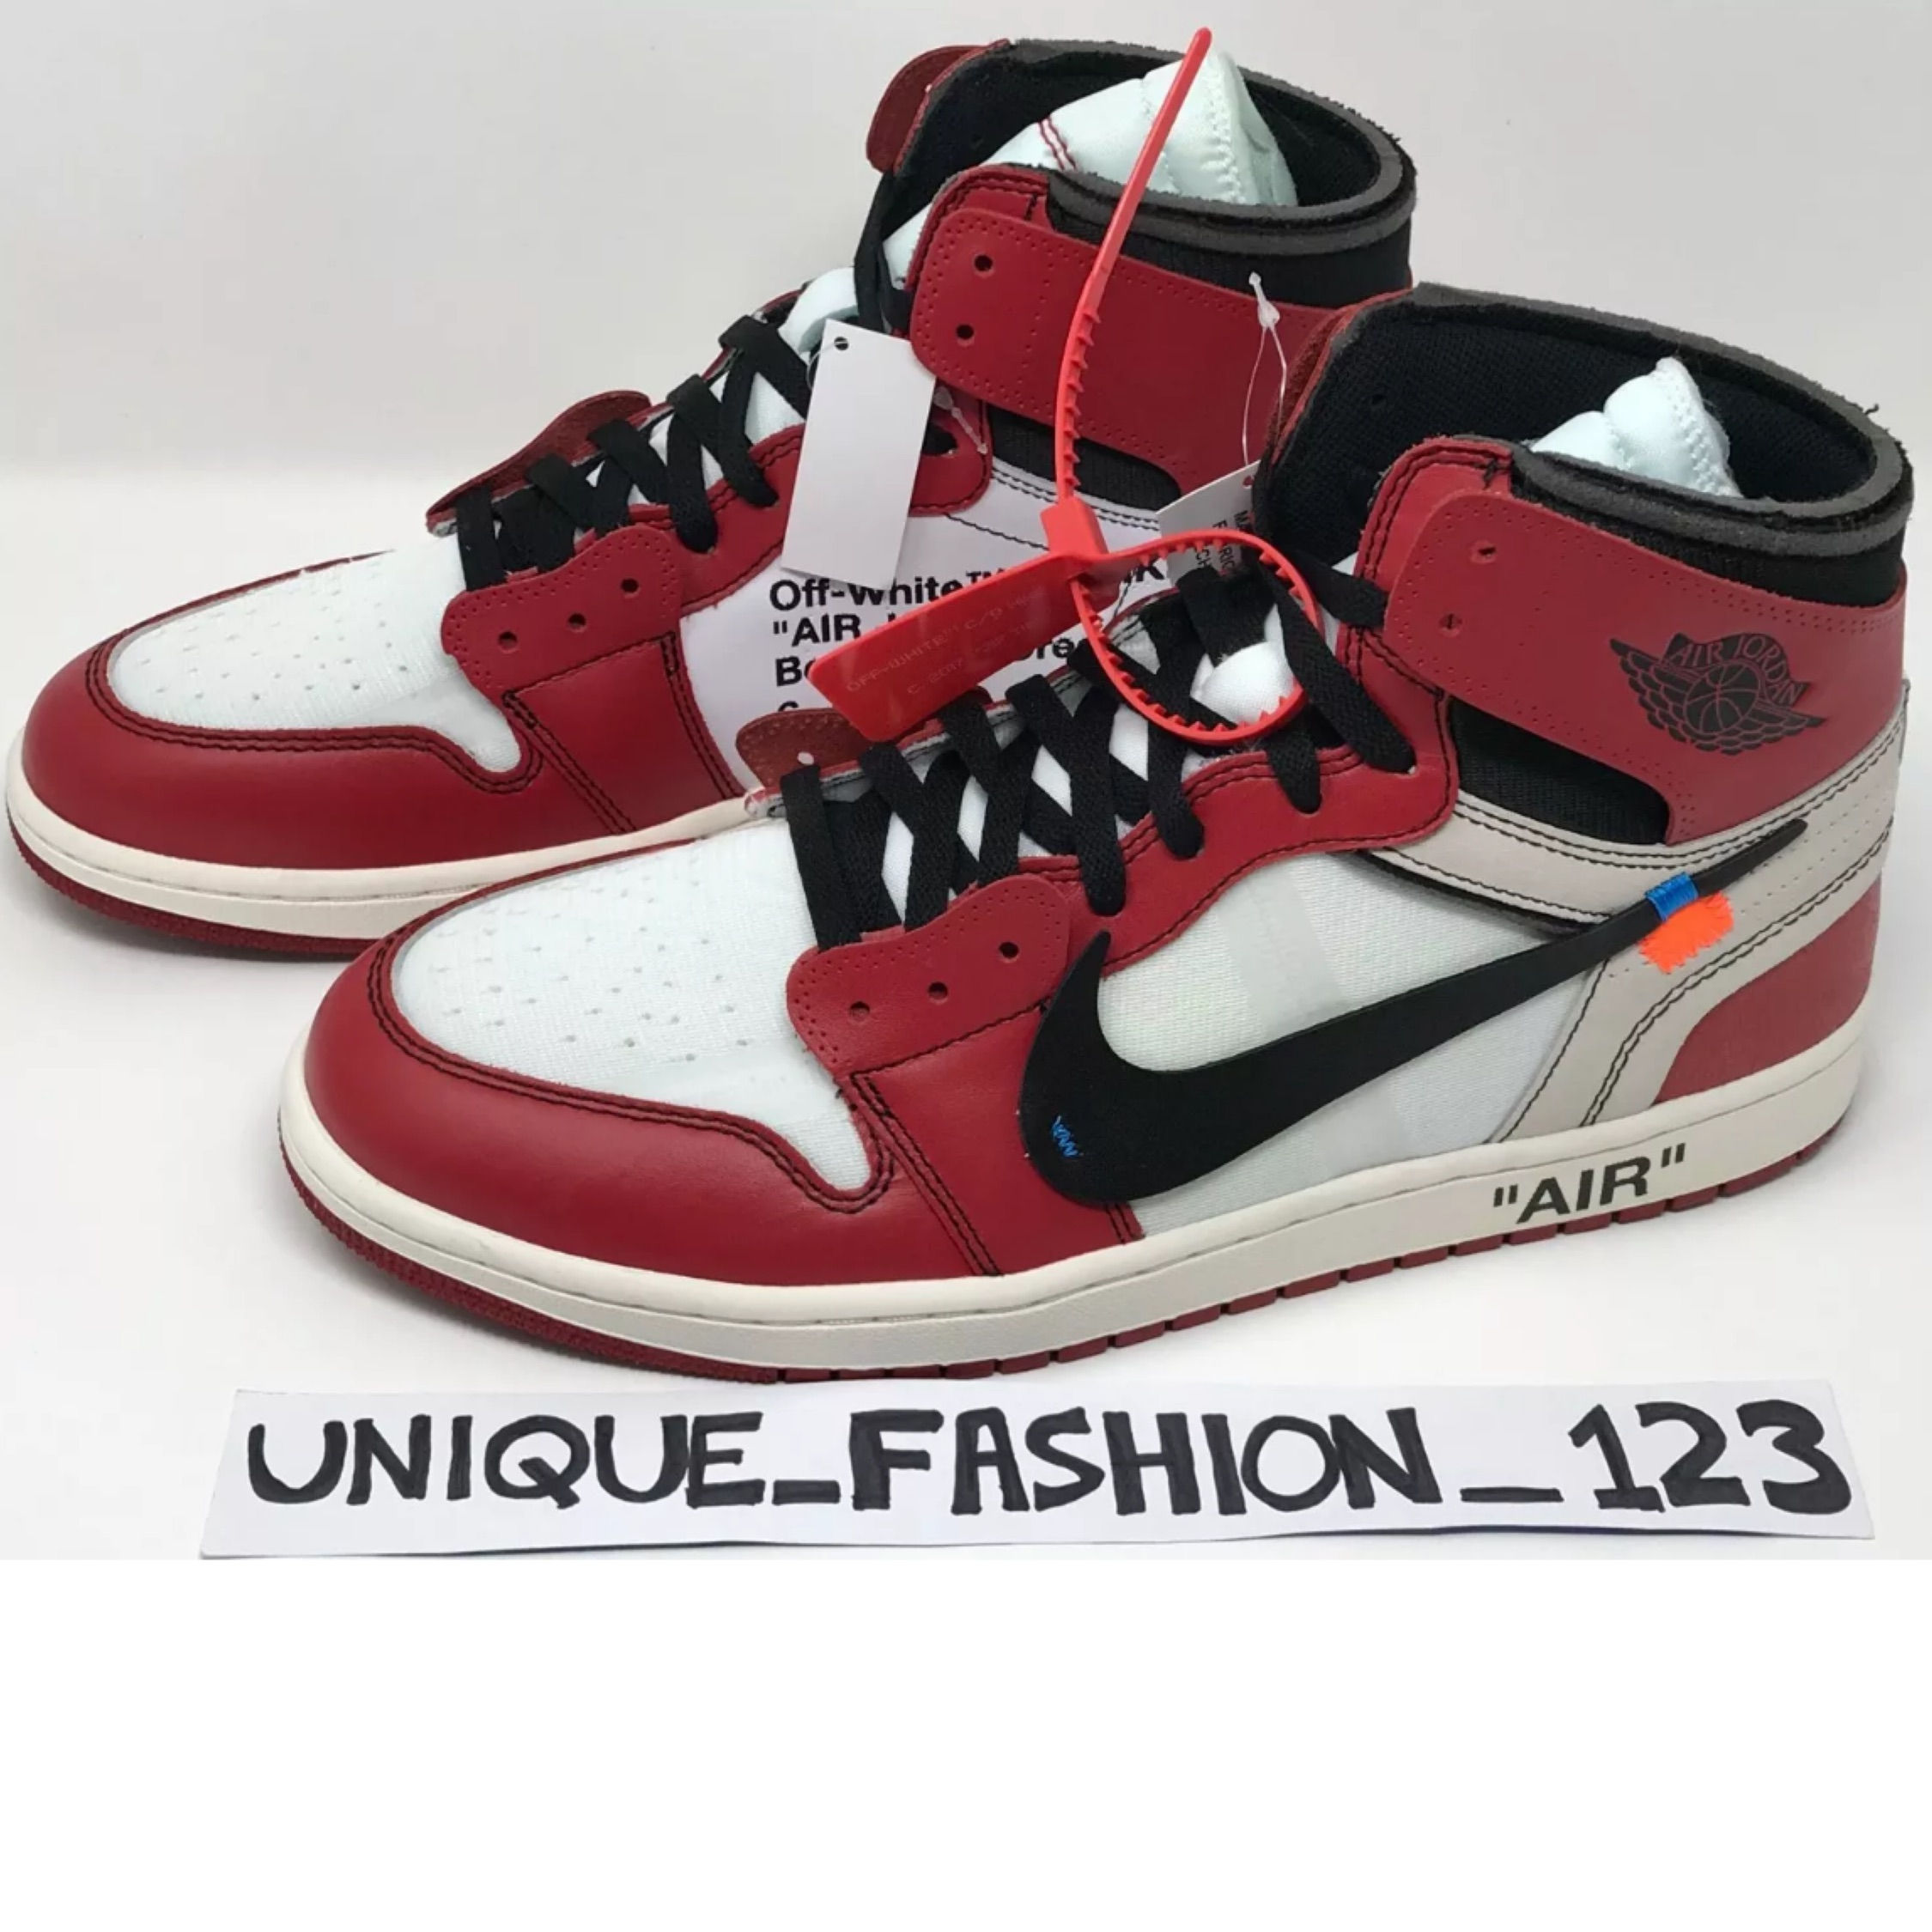 finest selection e5a9f 0518c Nike Air Jordan 1 Retro High X Off White Chicago